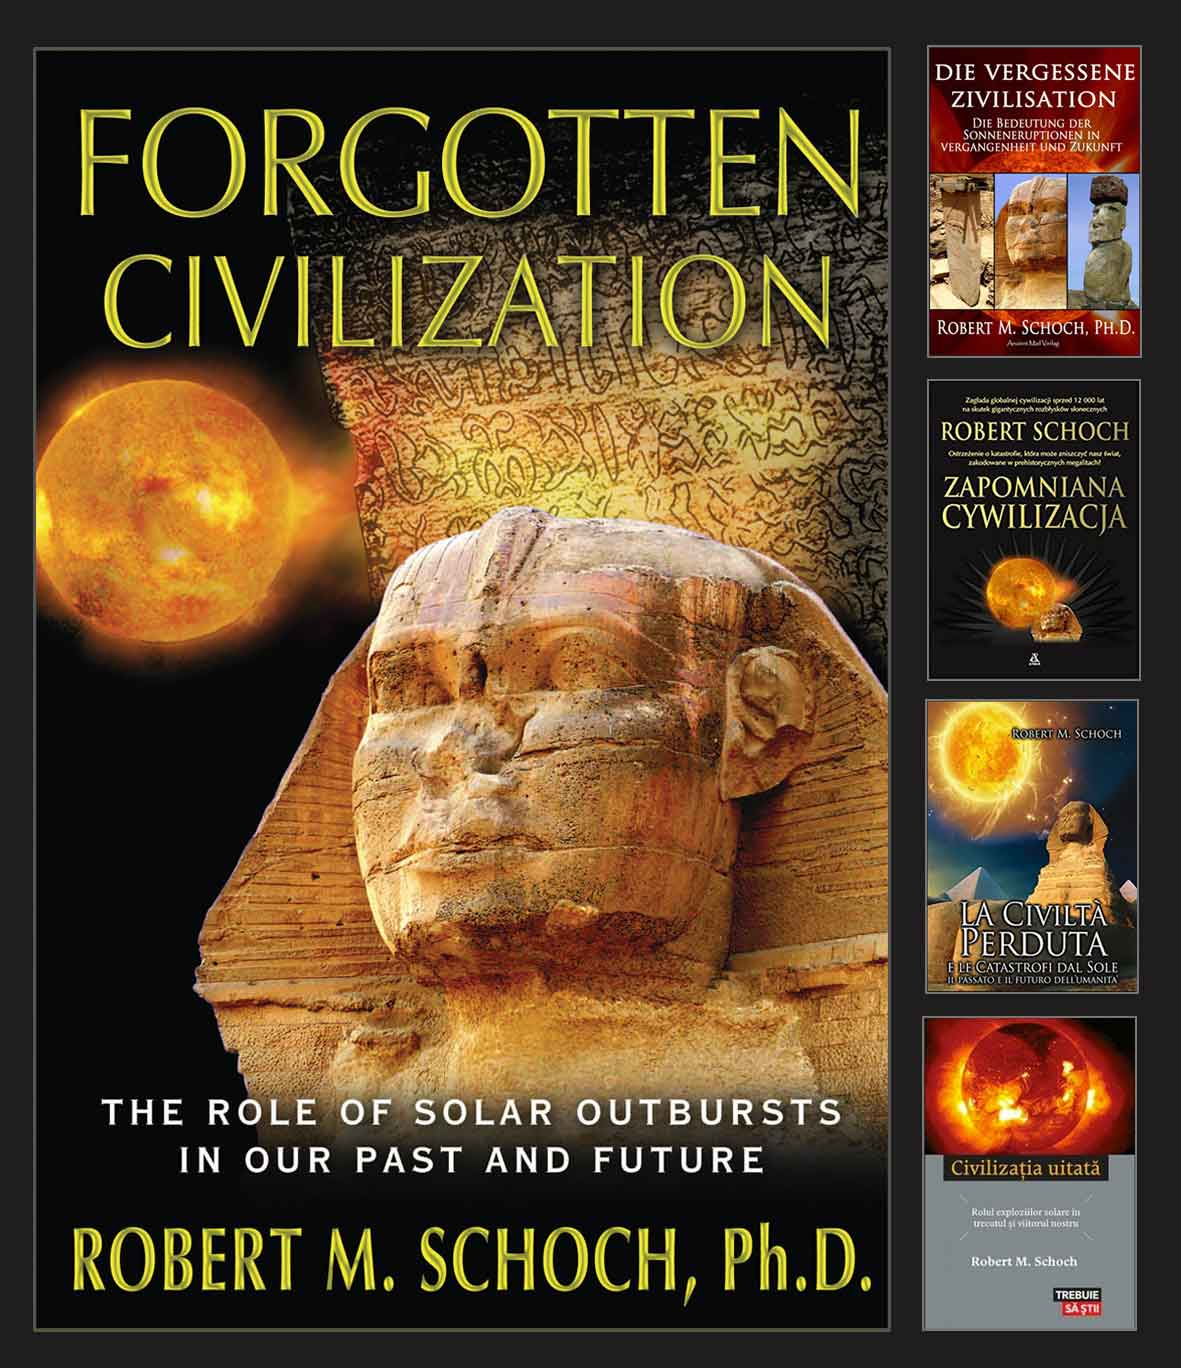 Photo montage of the front covers of the editions of Forgotten Civilization in  							various languages, English and others